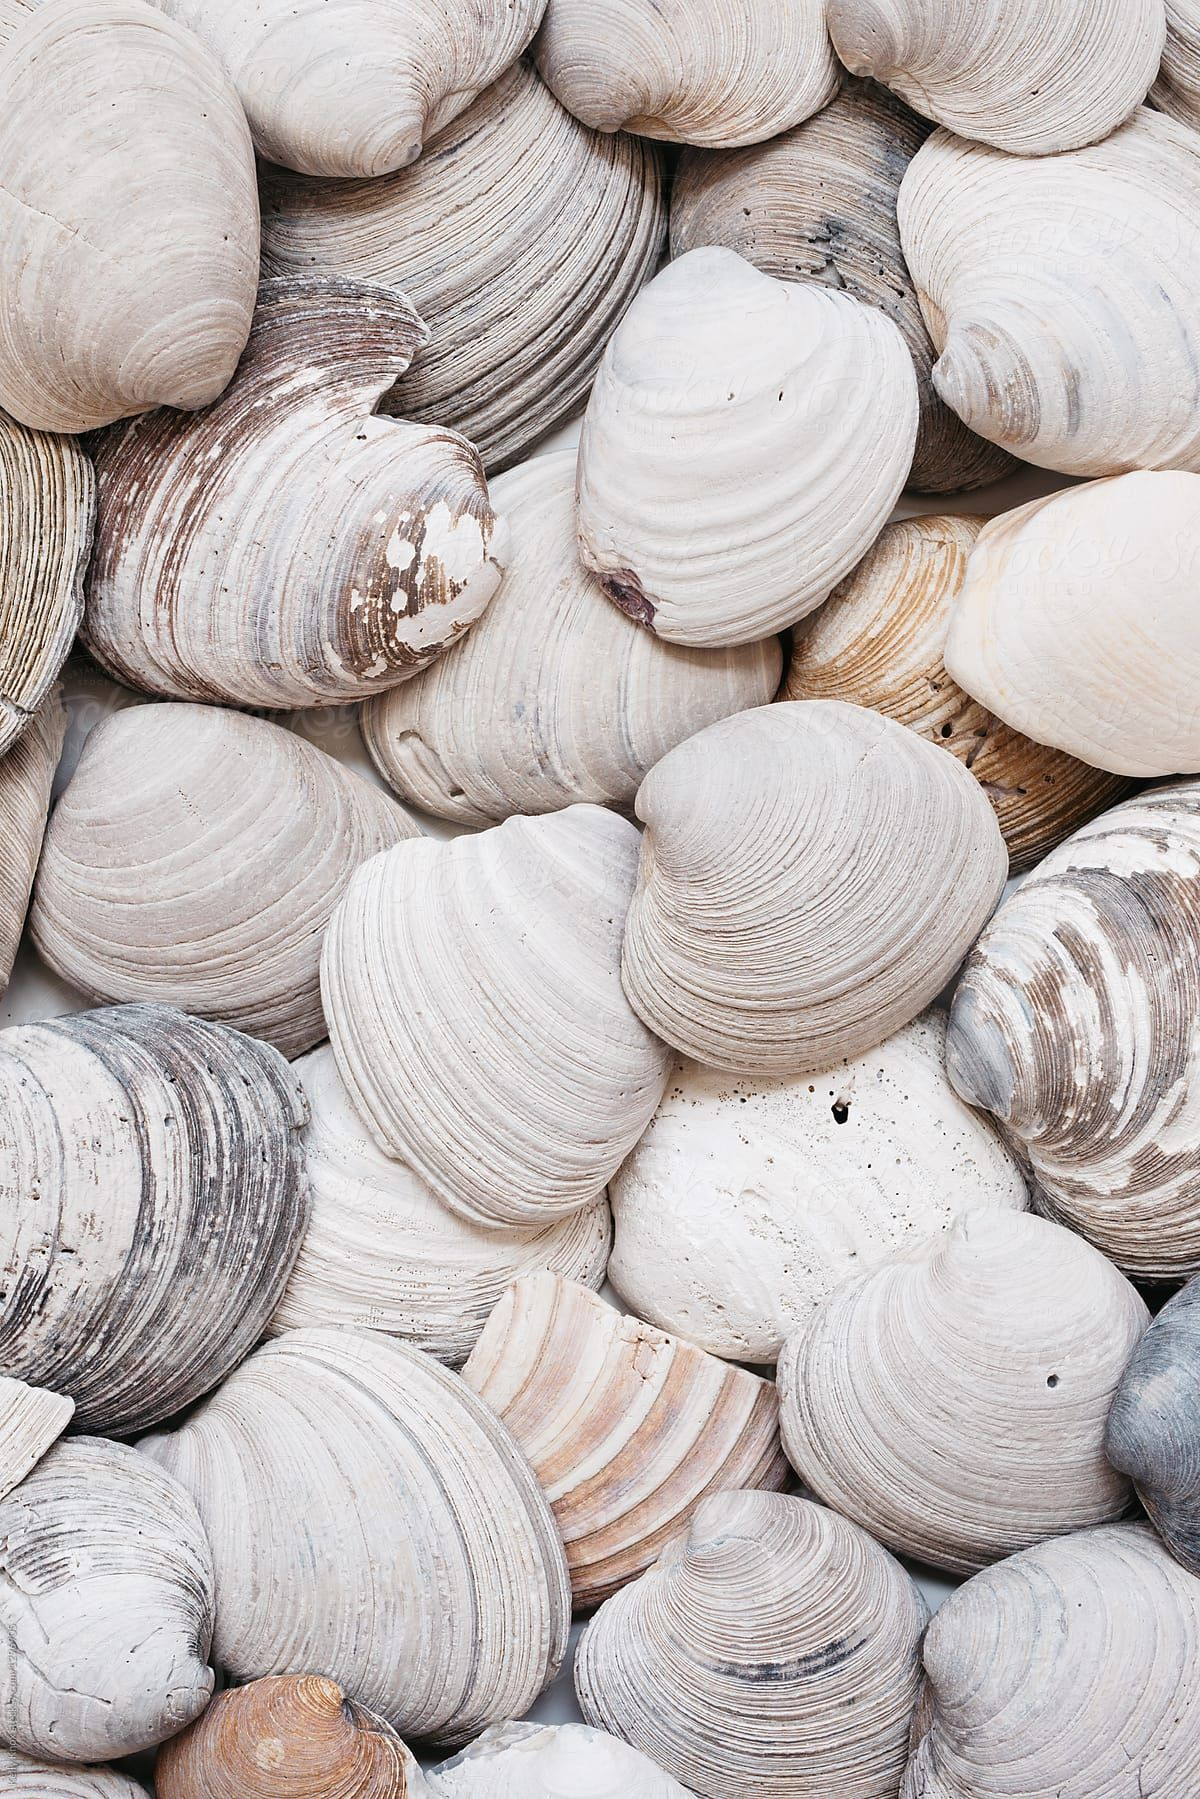 Overhead Image Of Rustic Clam Shells Download This High Resolution Stock Photo By Kelly Knox From Stocksy United Shells Photo Wall Collage Beach Aesthetic